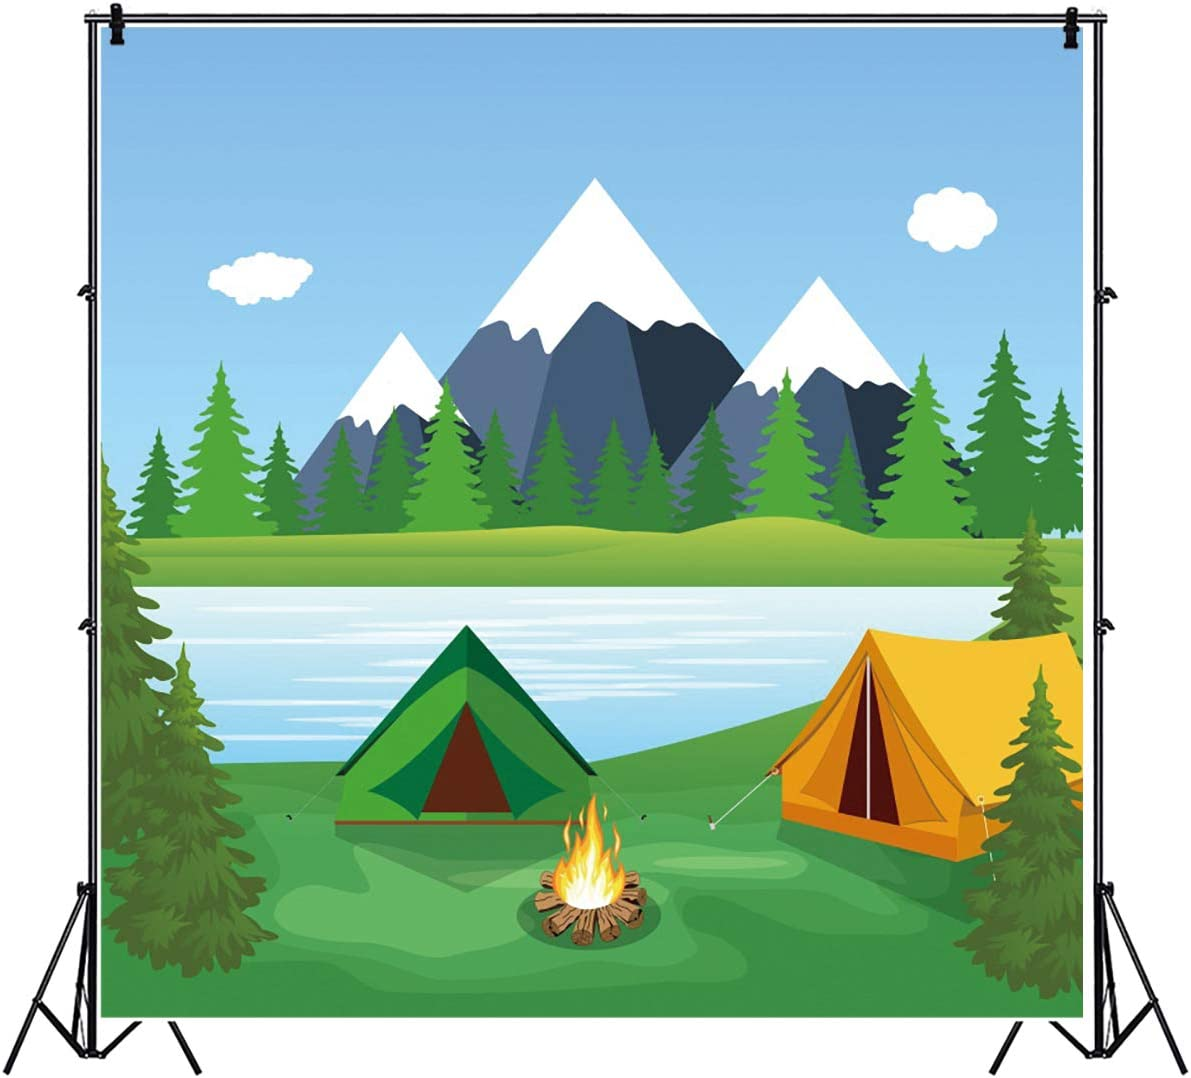 YEELE Safari Theme Backdrop Outdoor Camping in The Forest Photography Background 9x9ft Kids Birthday Cartoon Acting Show Portrait YouTube Channel Photo Booth Photoshoot Prop Digital Wallpaper